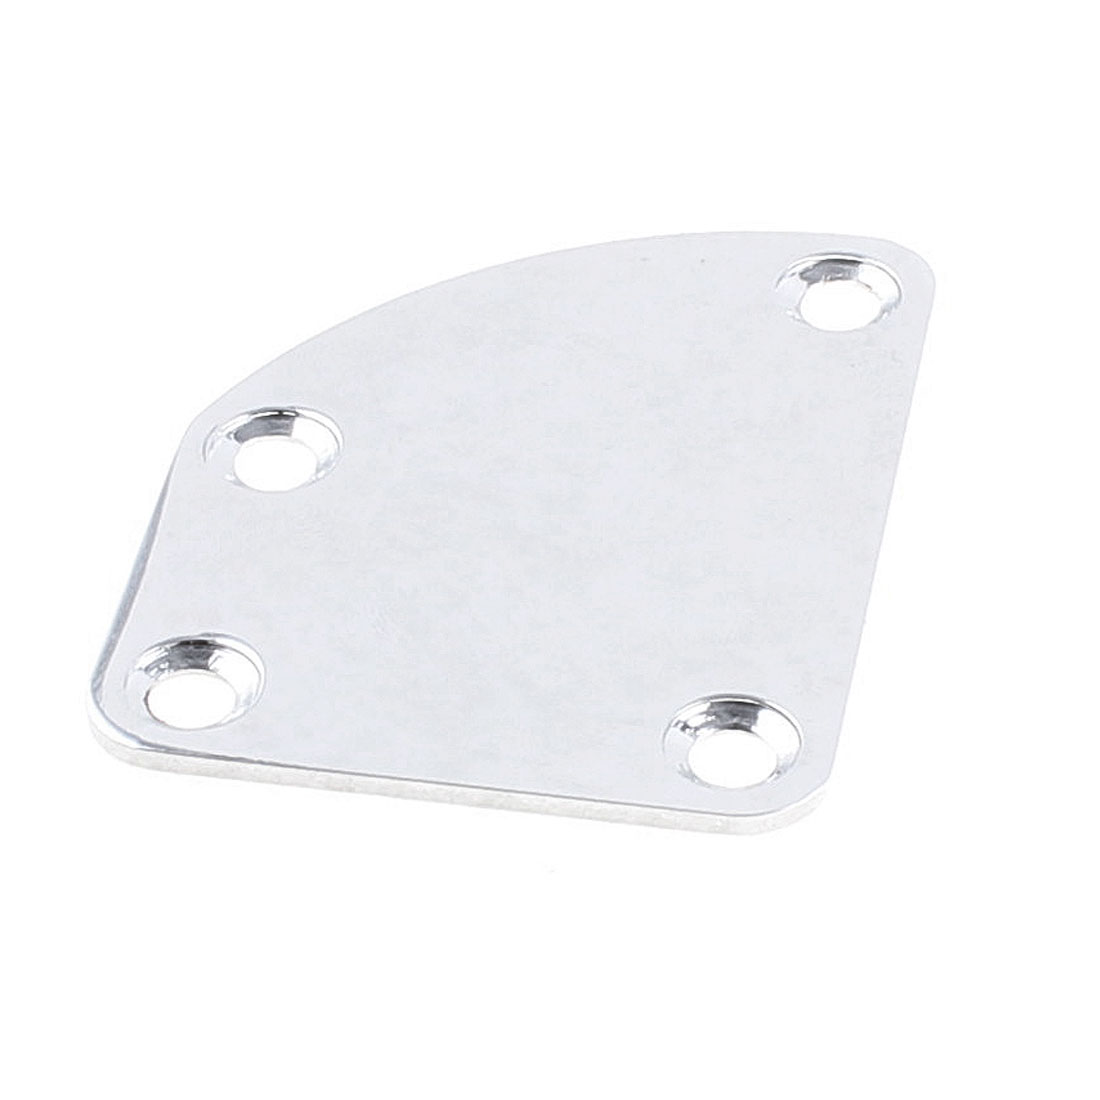 Metal Replacement Part Curved Edge Electric Guitar Neck Plate Silver Tone